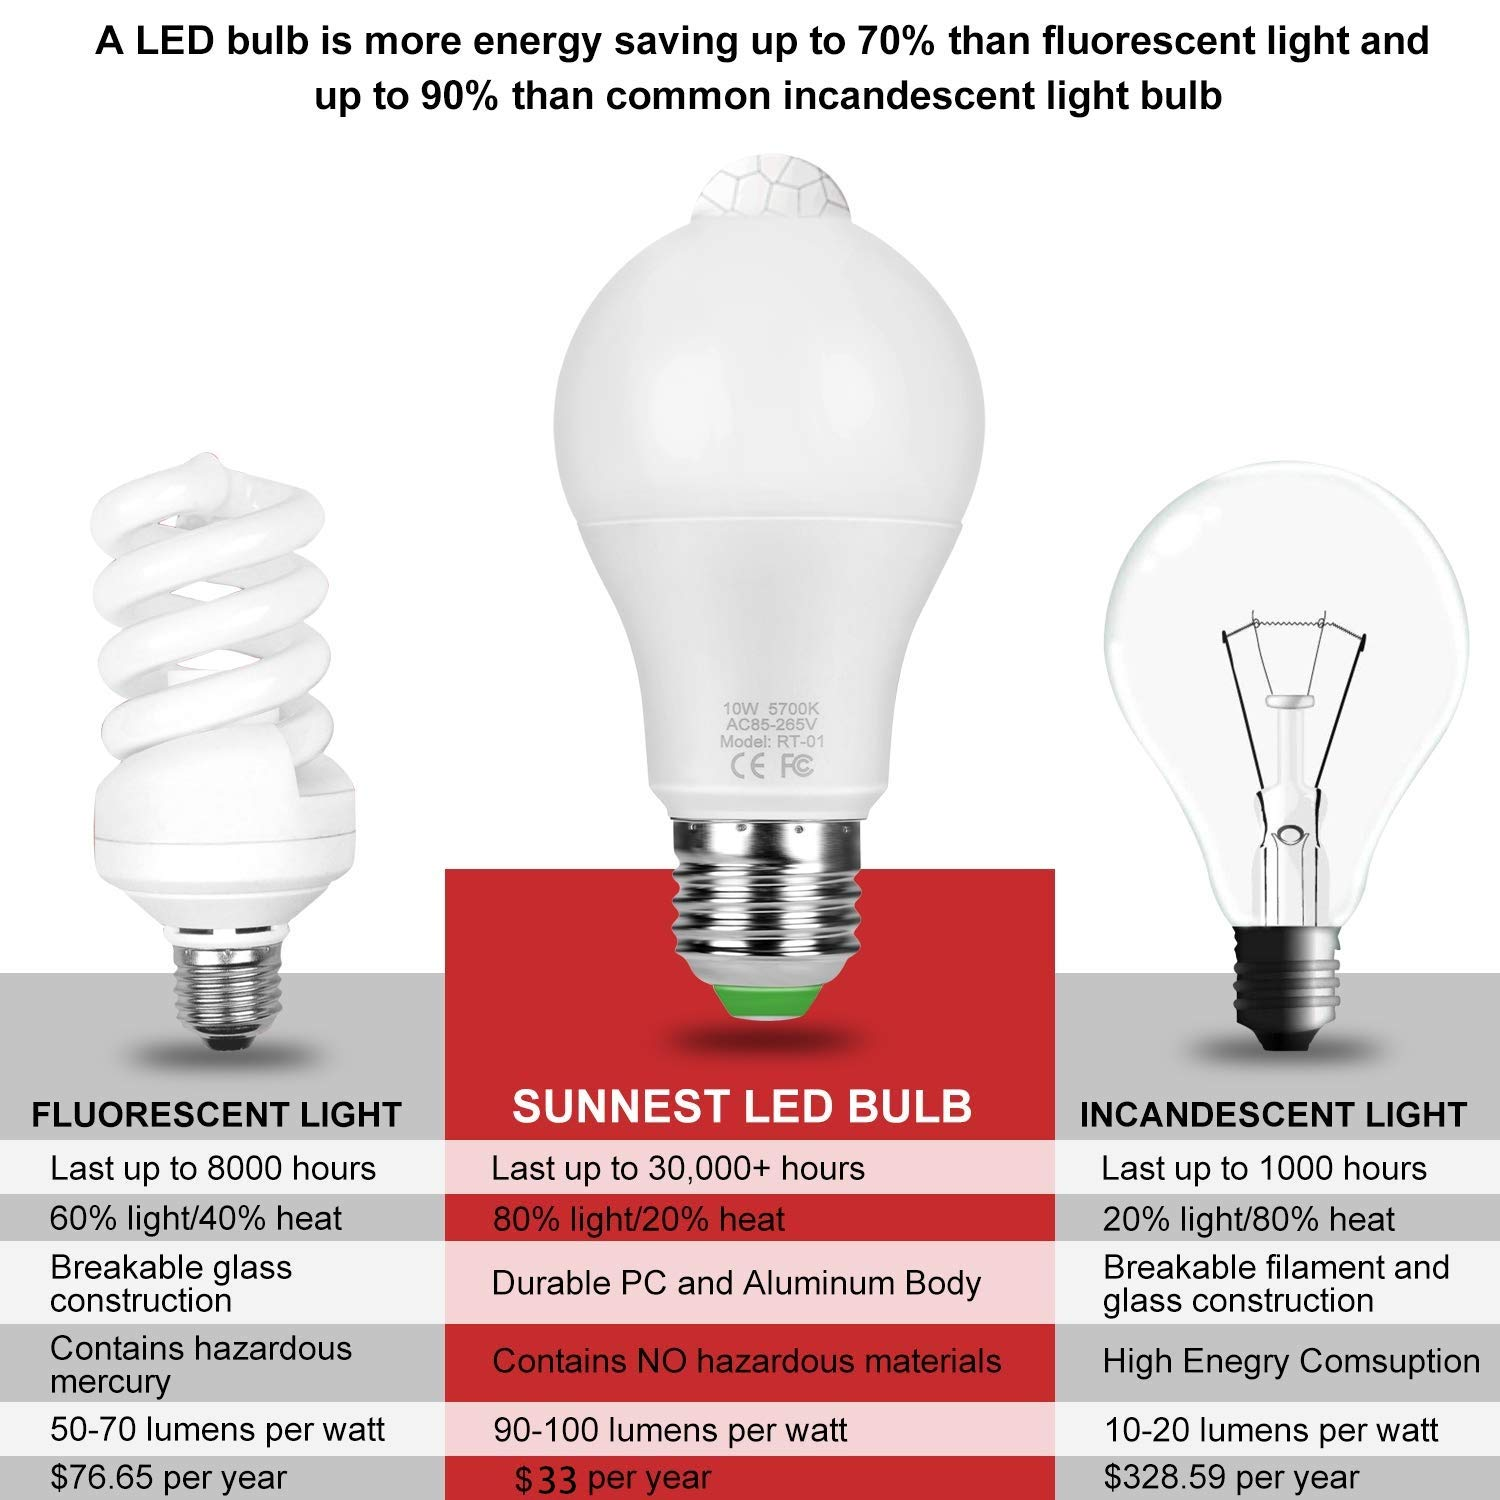 Mood Light Bulb Dimmable E26 LED Light Bulb Sunnest 120 Colors LED Light Bulb 10W RGBW Color Changing Light Bulb with Remote Control Party and More Great for Home Decor Decorative Lights Stage